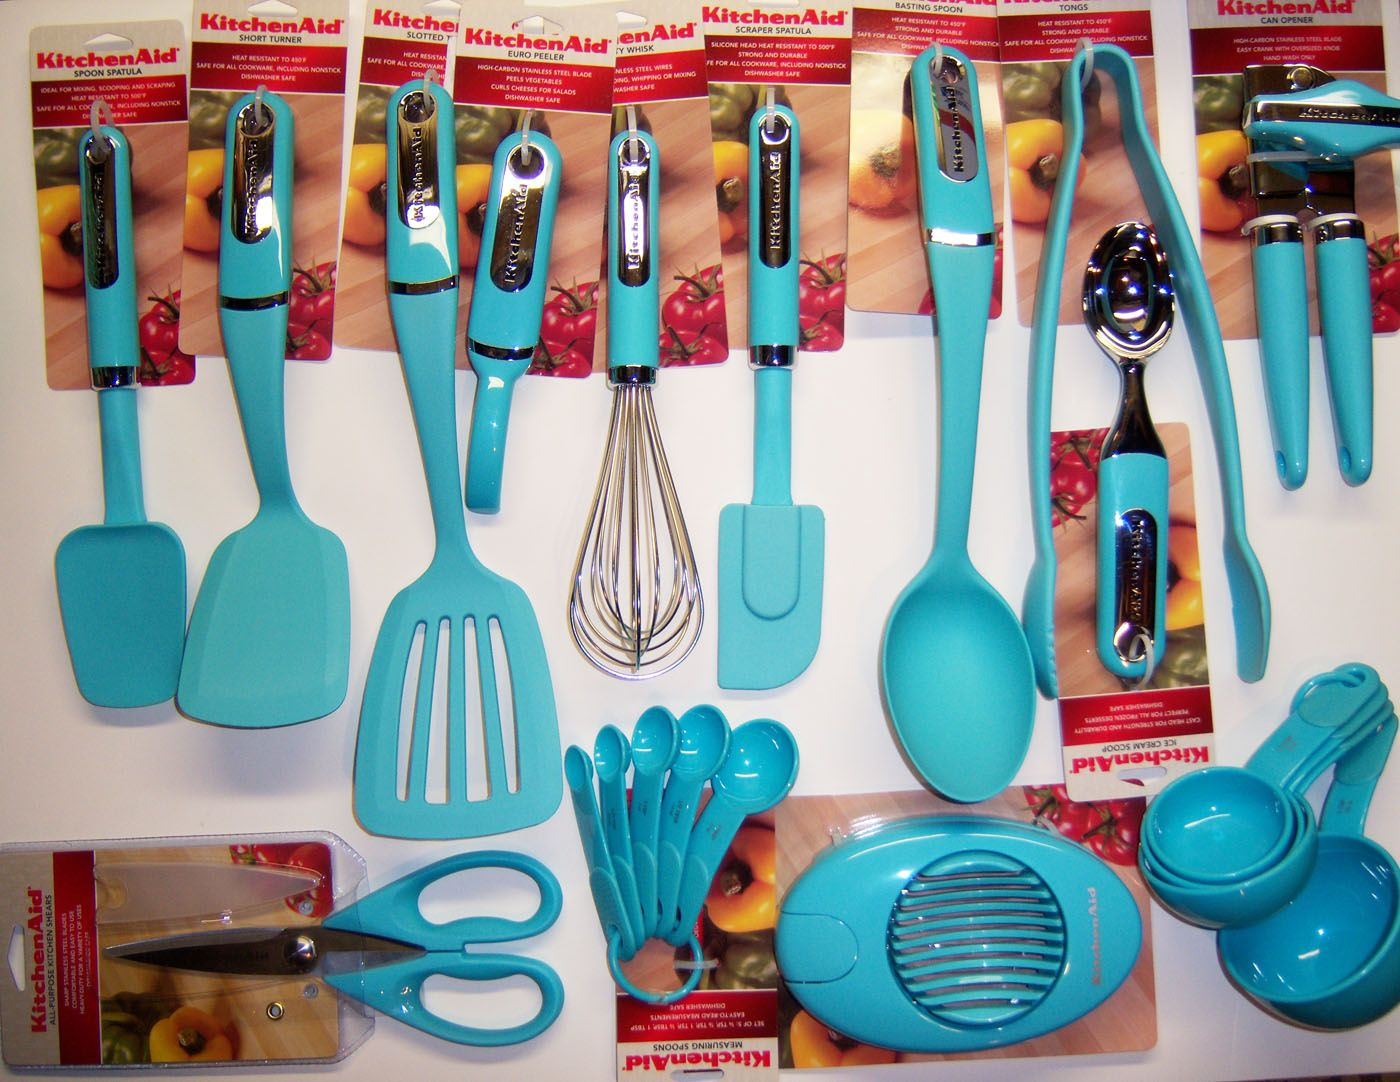 KitchenAid Turquoise Blue Choice of different Kitchen Cooking ...